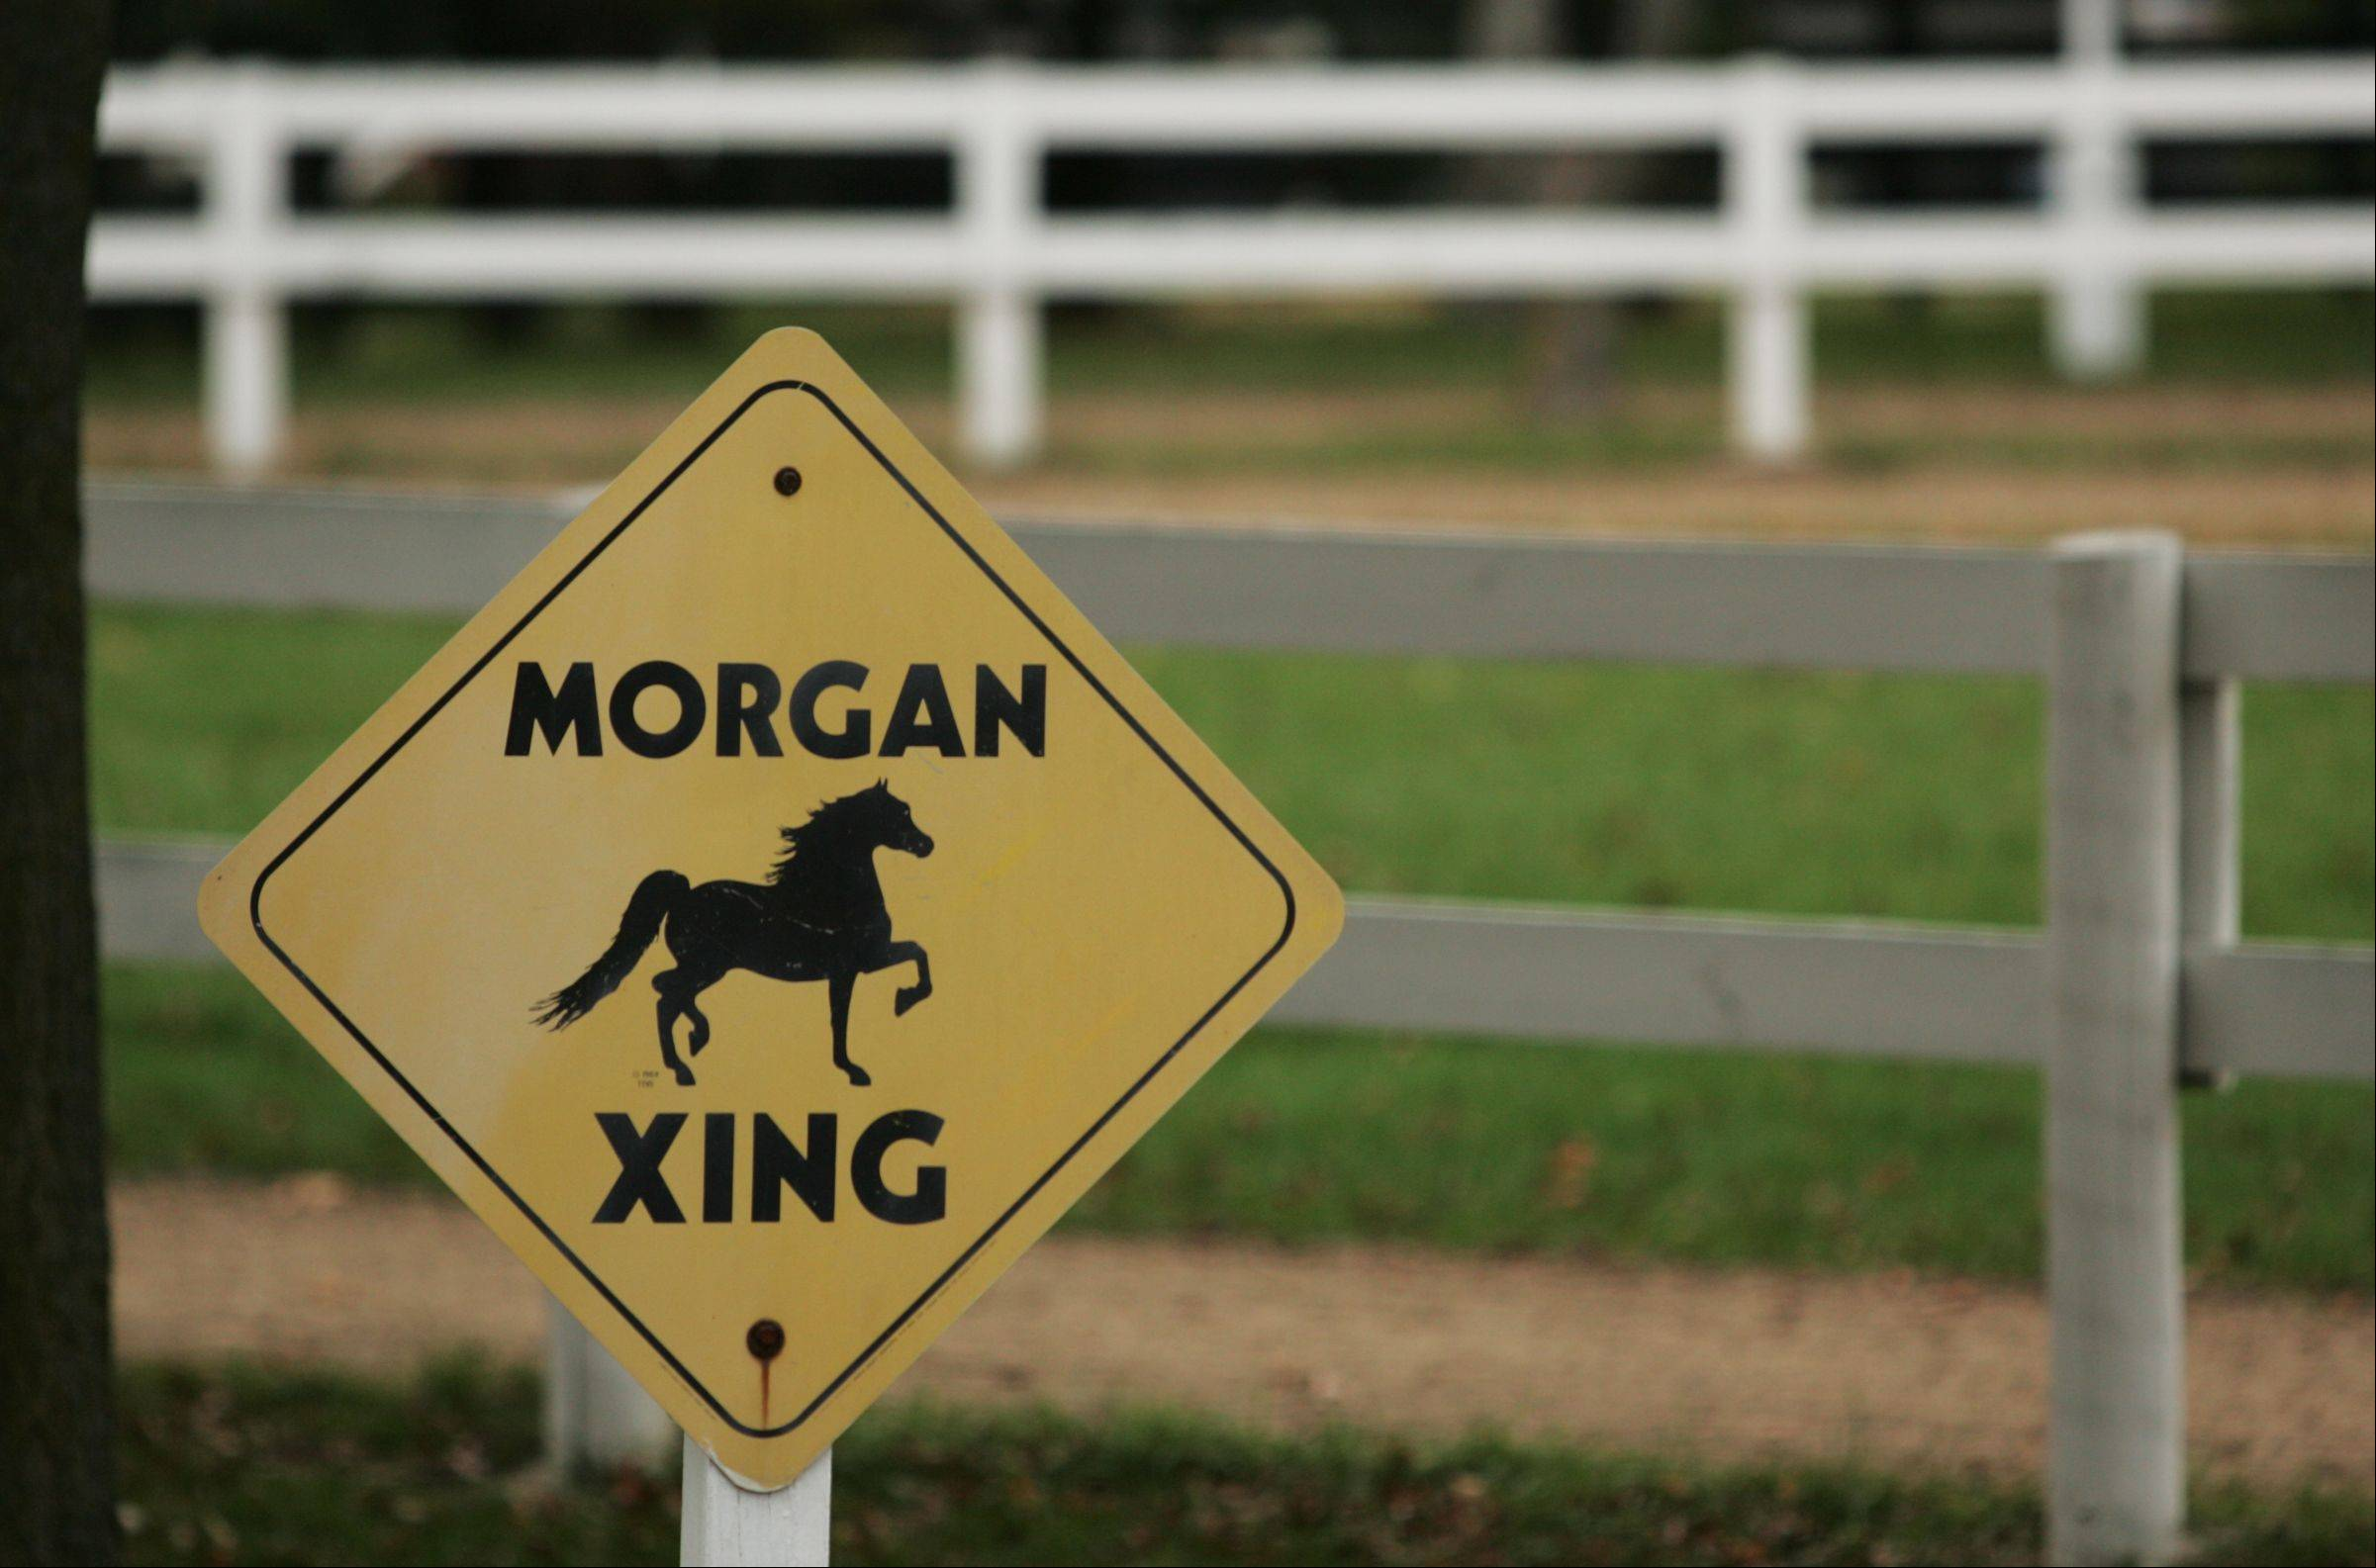 Most of the horses bred and trained at Merriehill Farm in Marengo are Morgans.